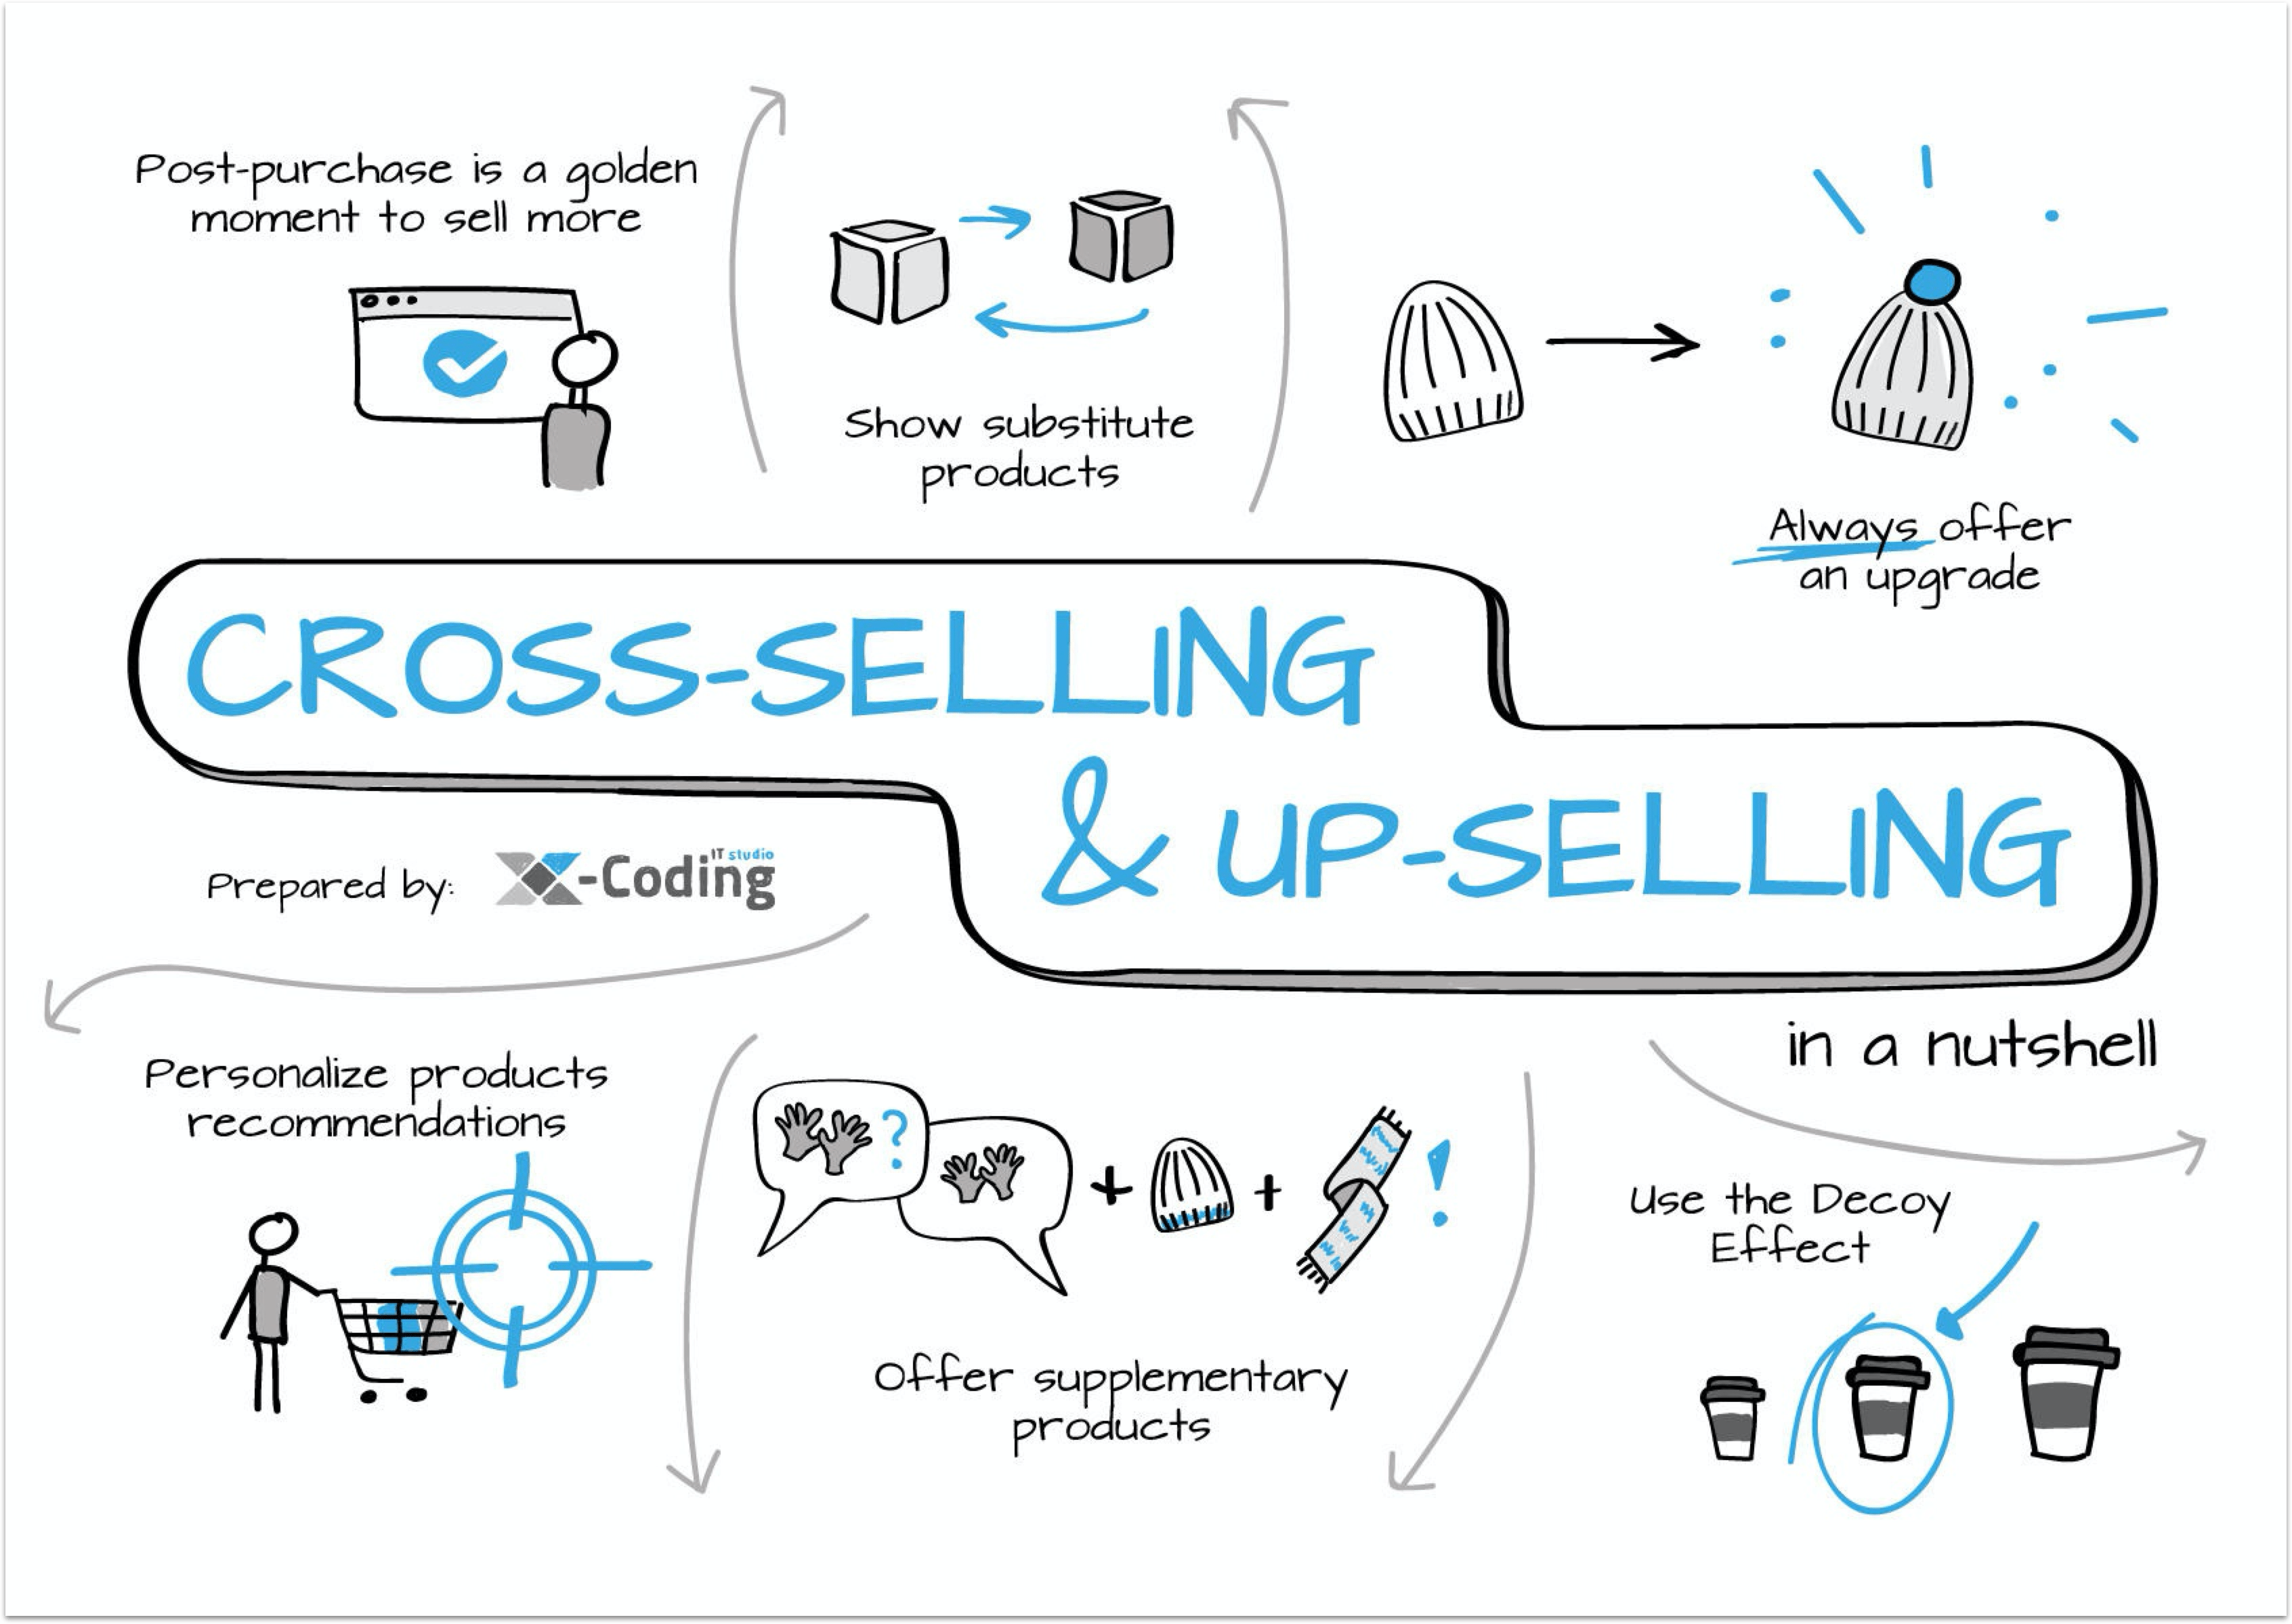 What is cross-selling and upselling?